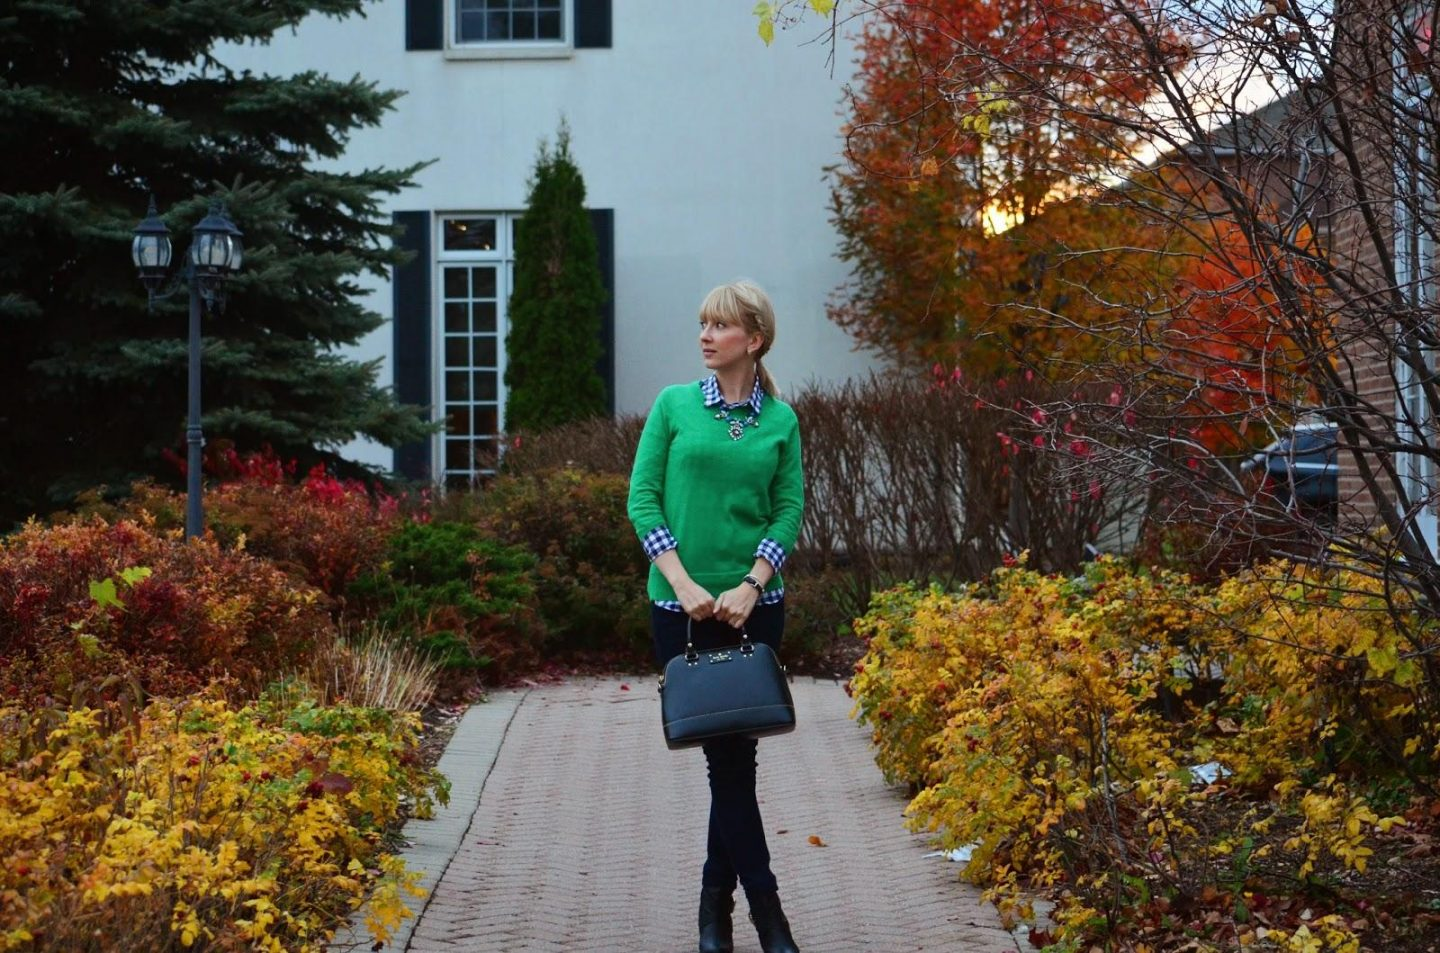 j. Crew, J. Crew factory, Preppy, preppy style, Kate Spade, Kate Spade bag, asos boots, asos, green sweater, wool sweater,